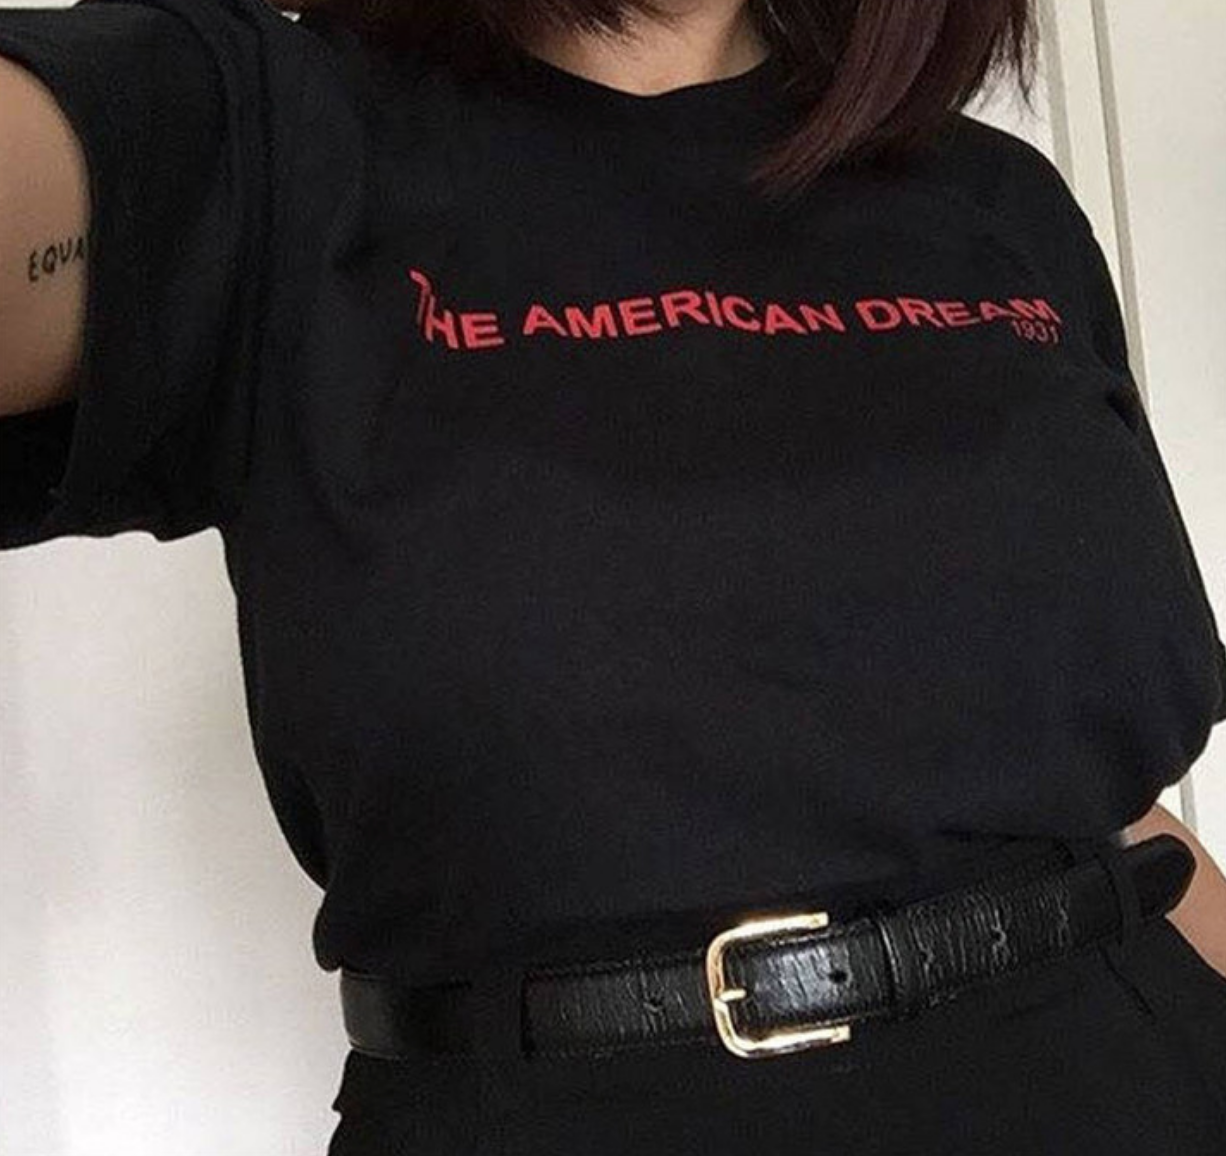 The American Dream - Custom Chic NYC Graphic T Shirt